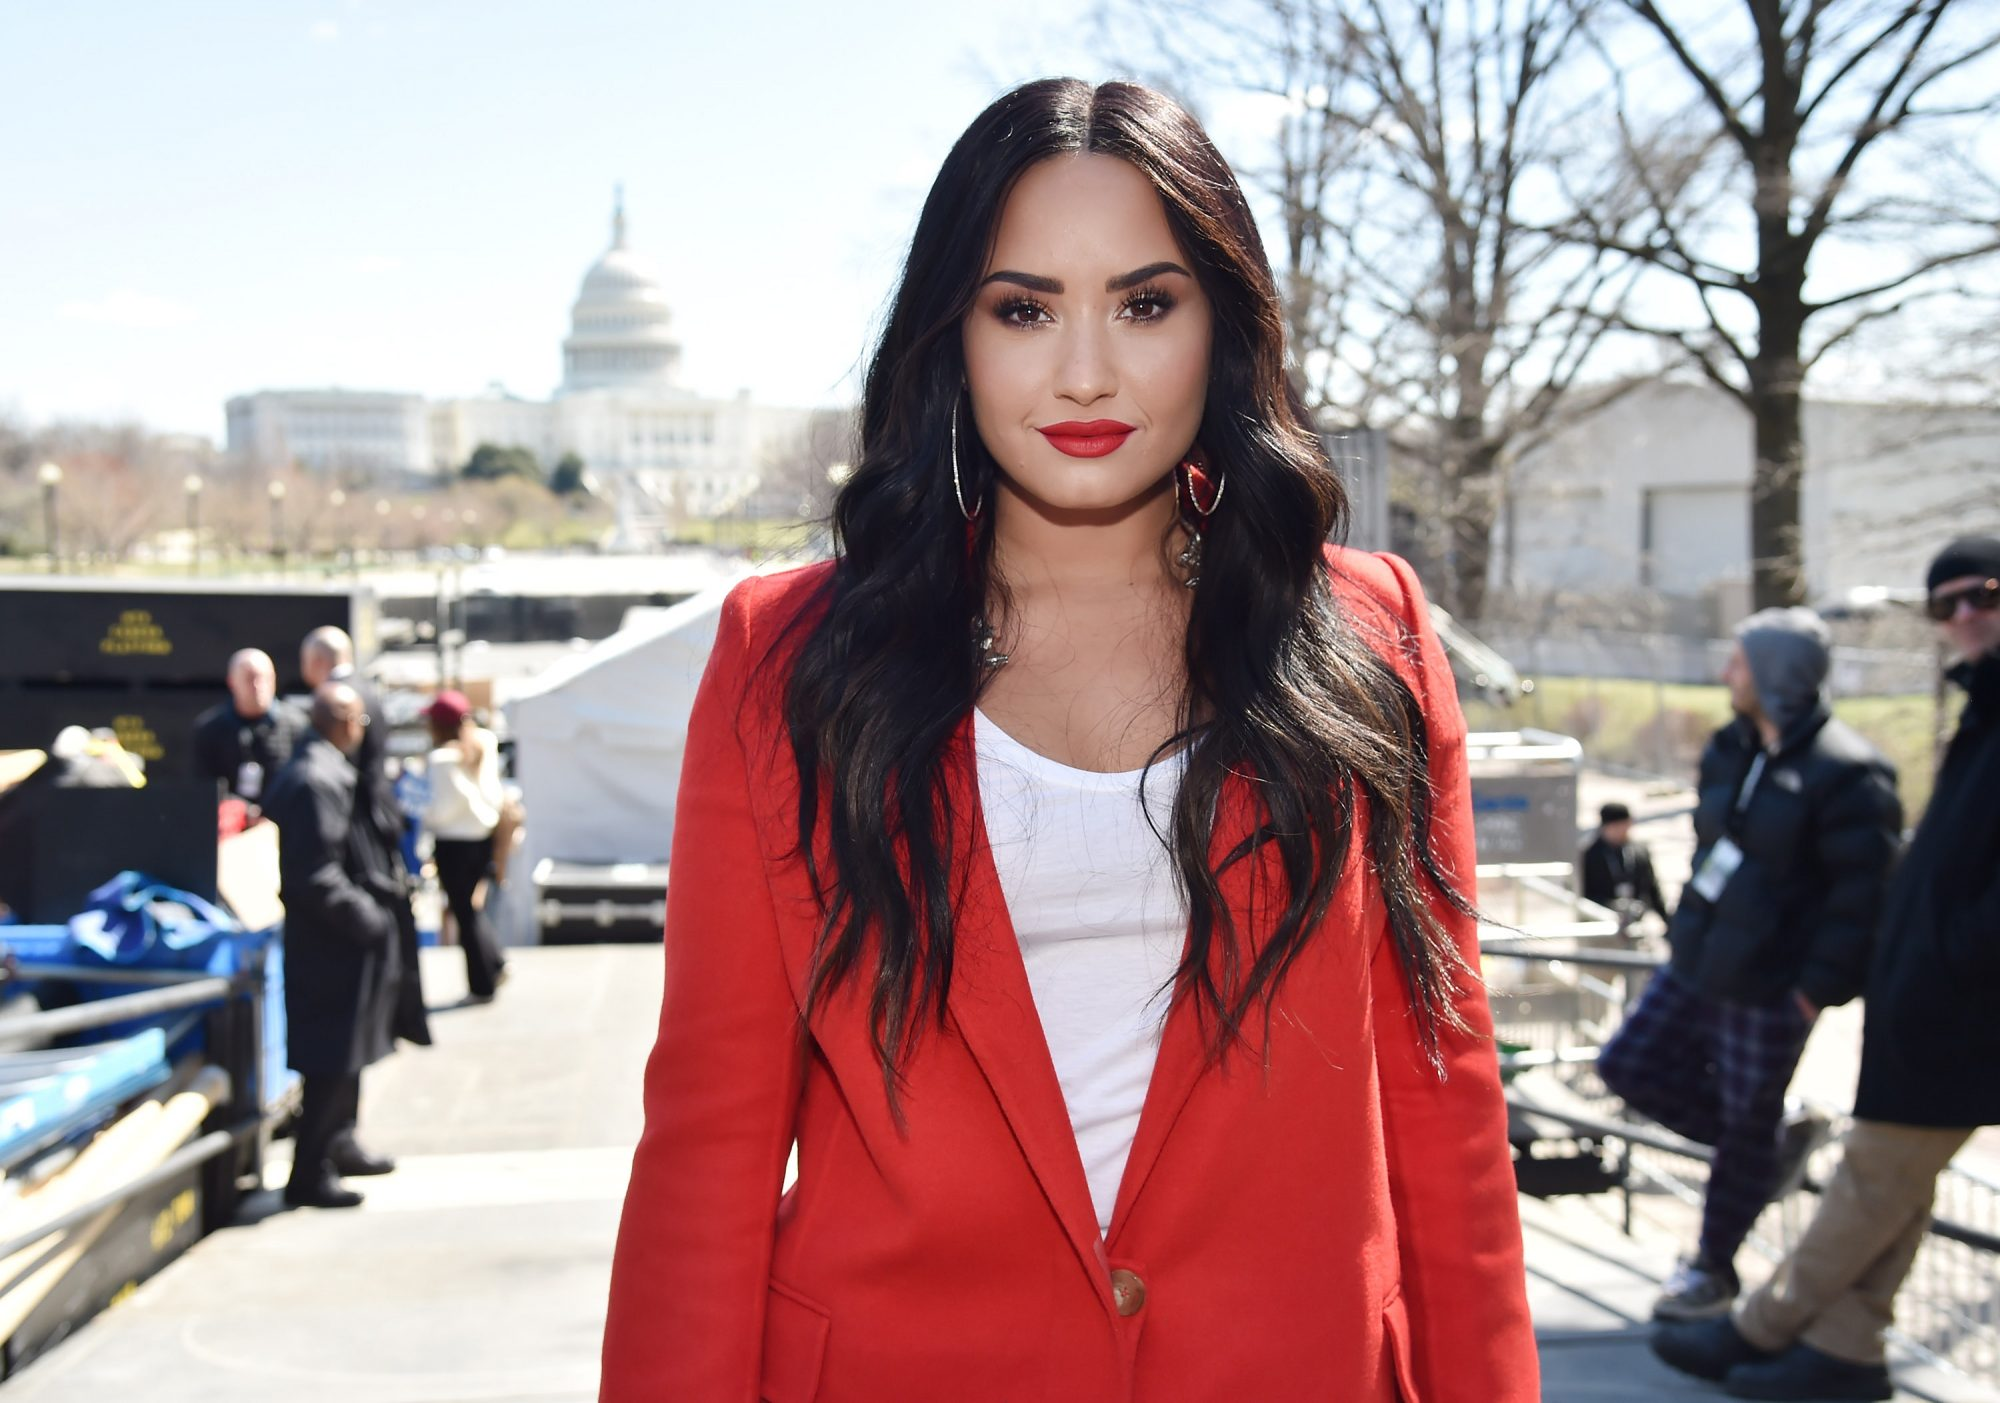 Demi Lovato March For Our Lives In Washington, DC